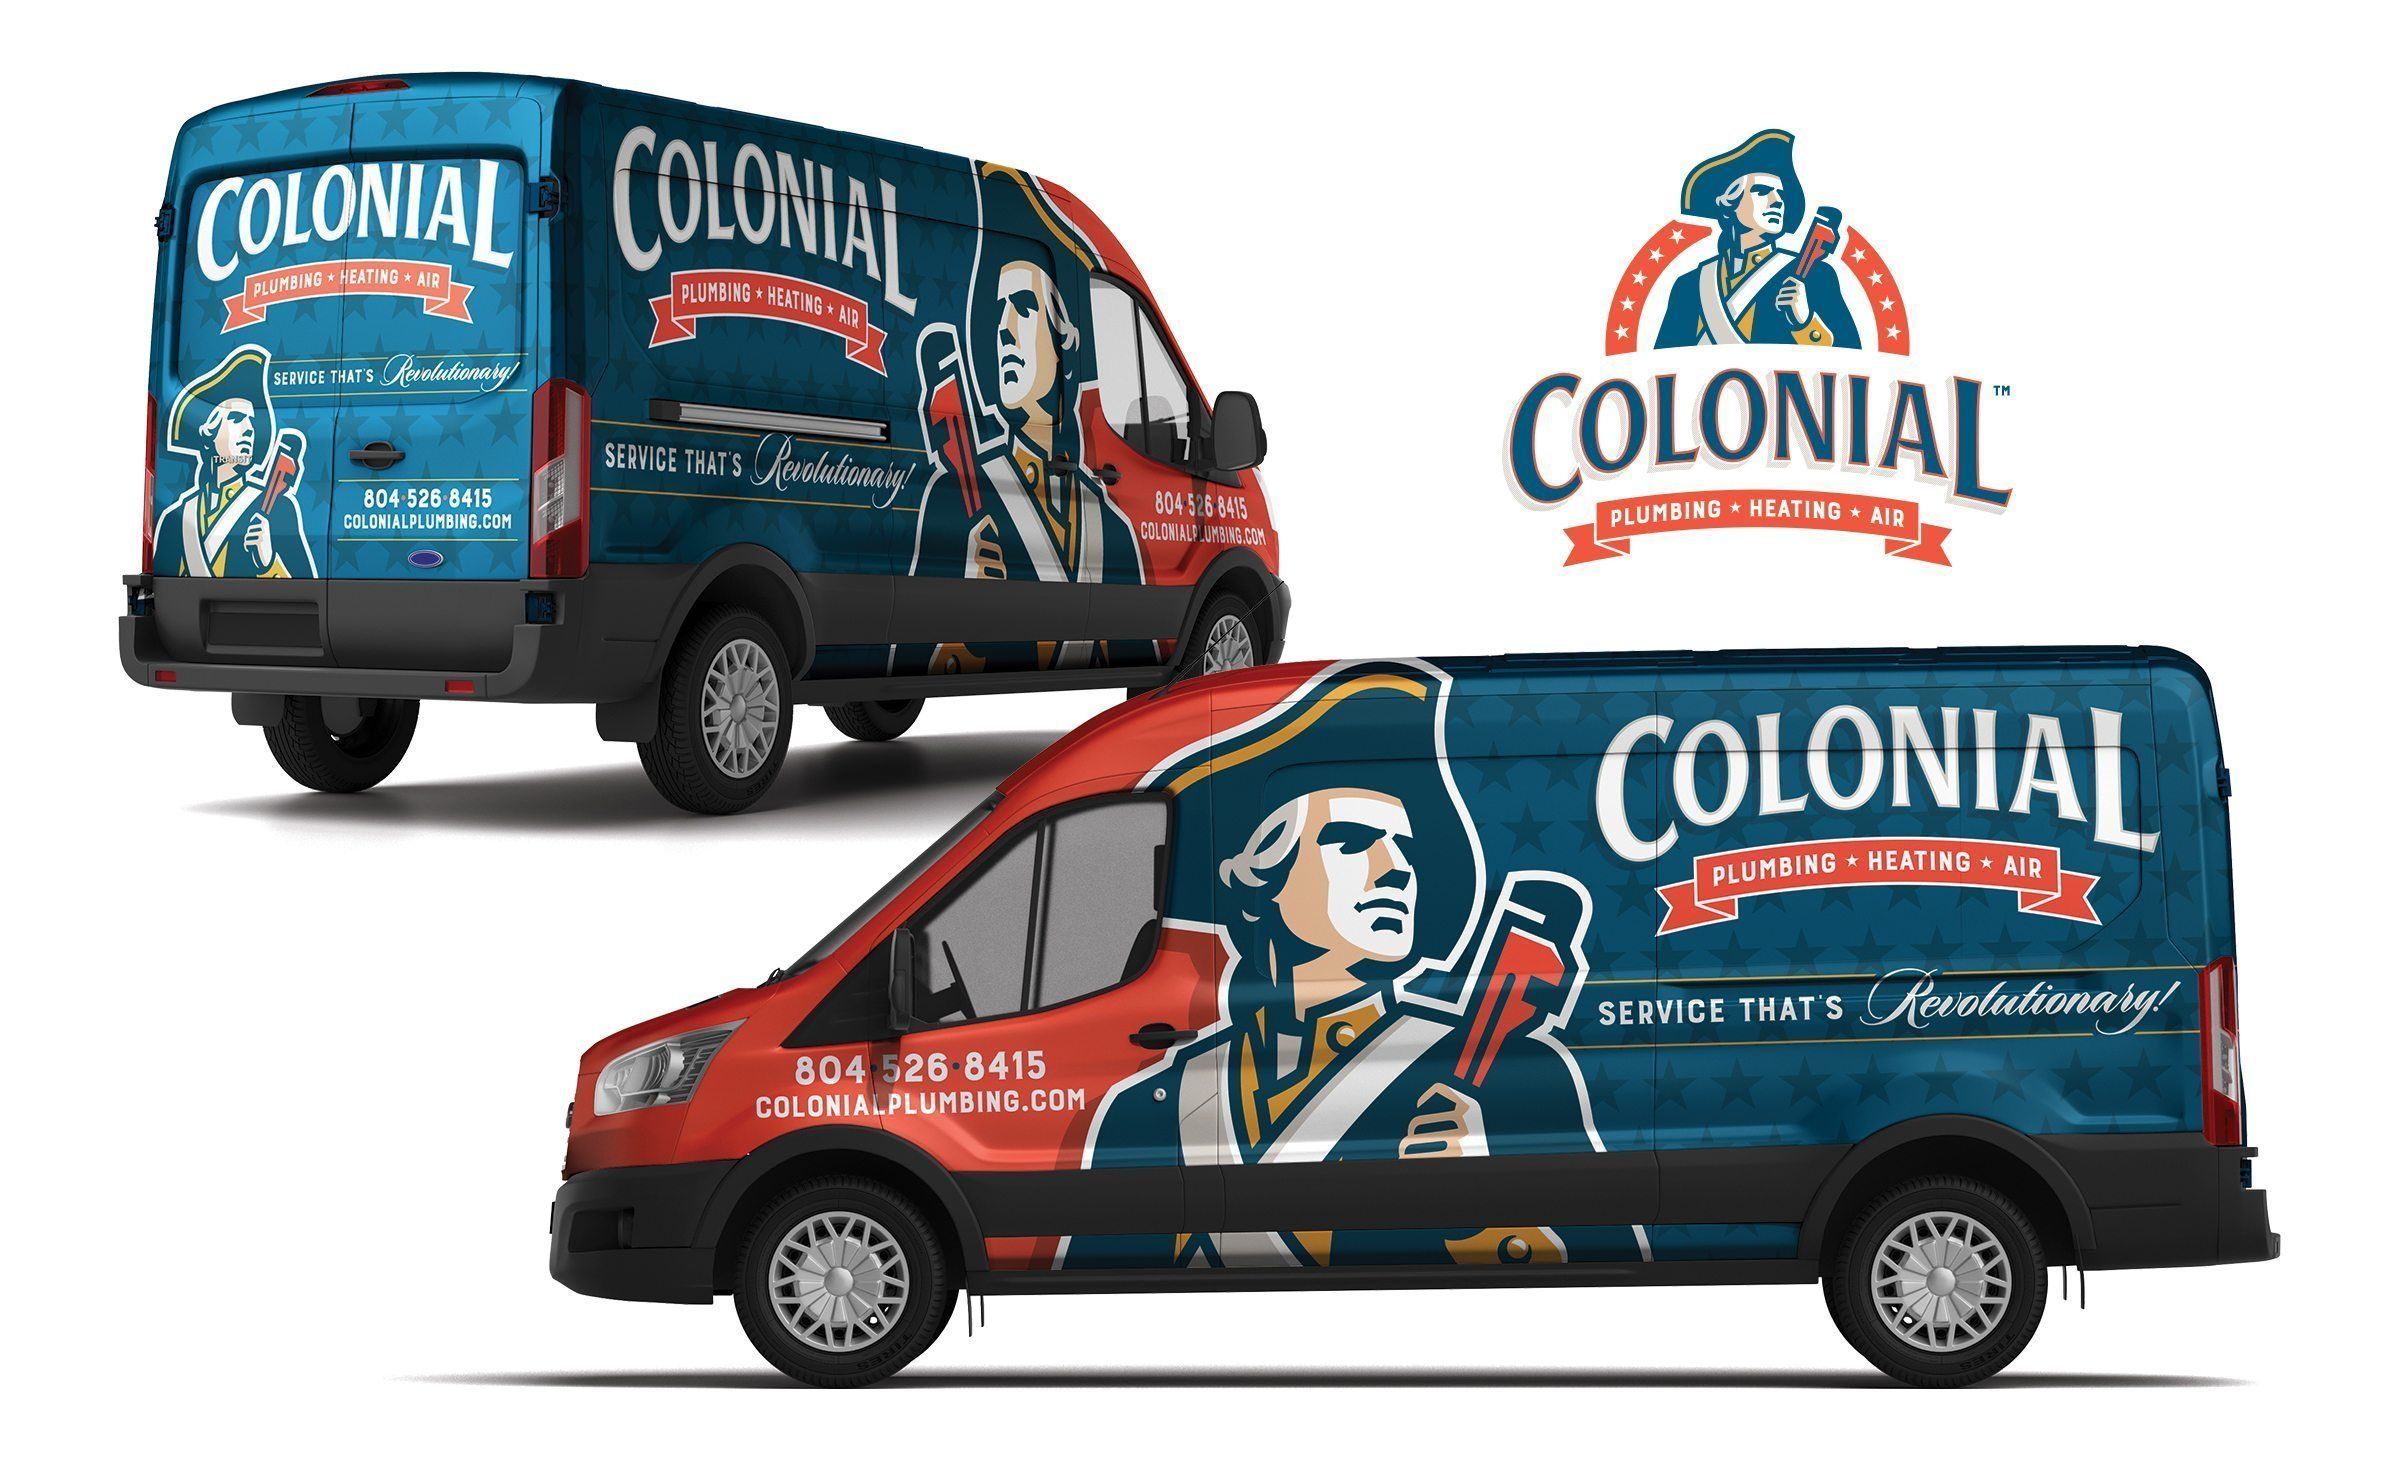 Vehicle wrap design for this HVAC and plumbing contractor located in Colonial Heights, VA.